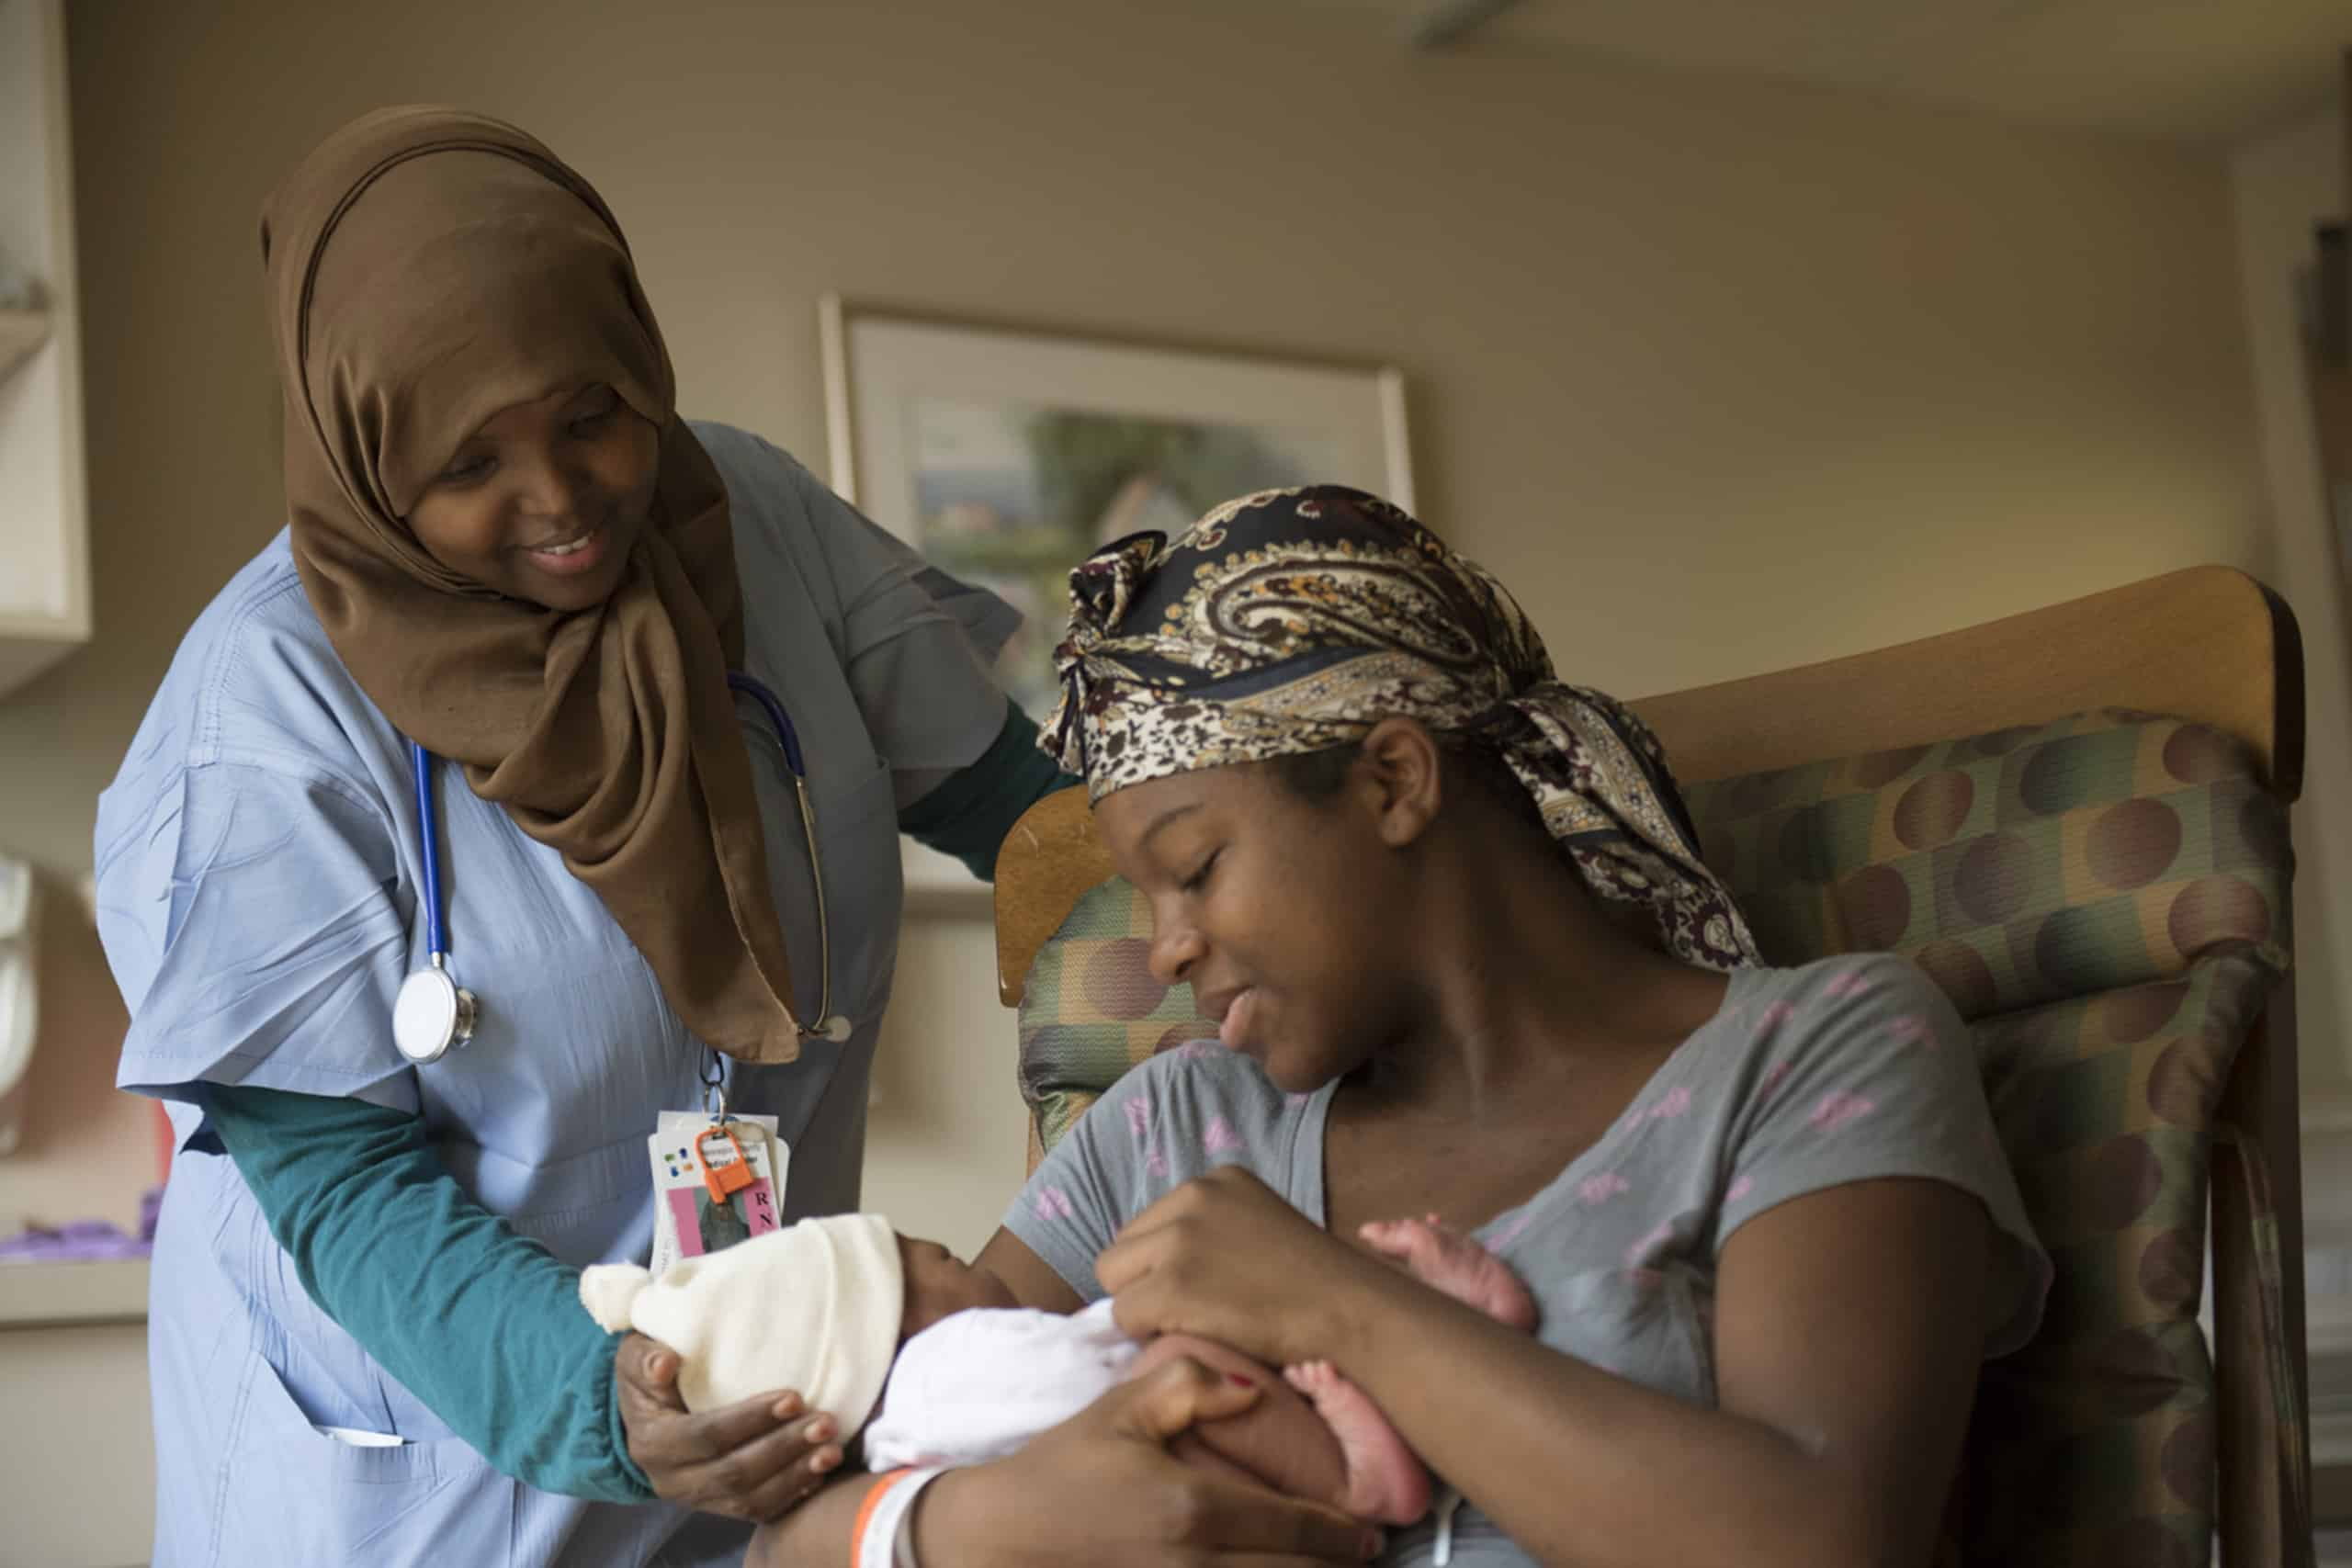 hhc nurse with mother and child